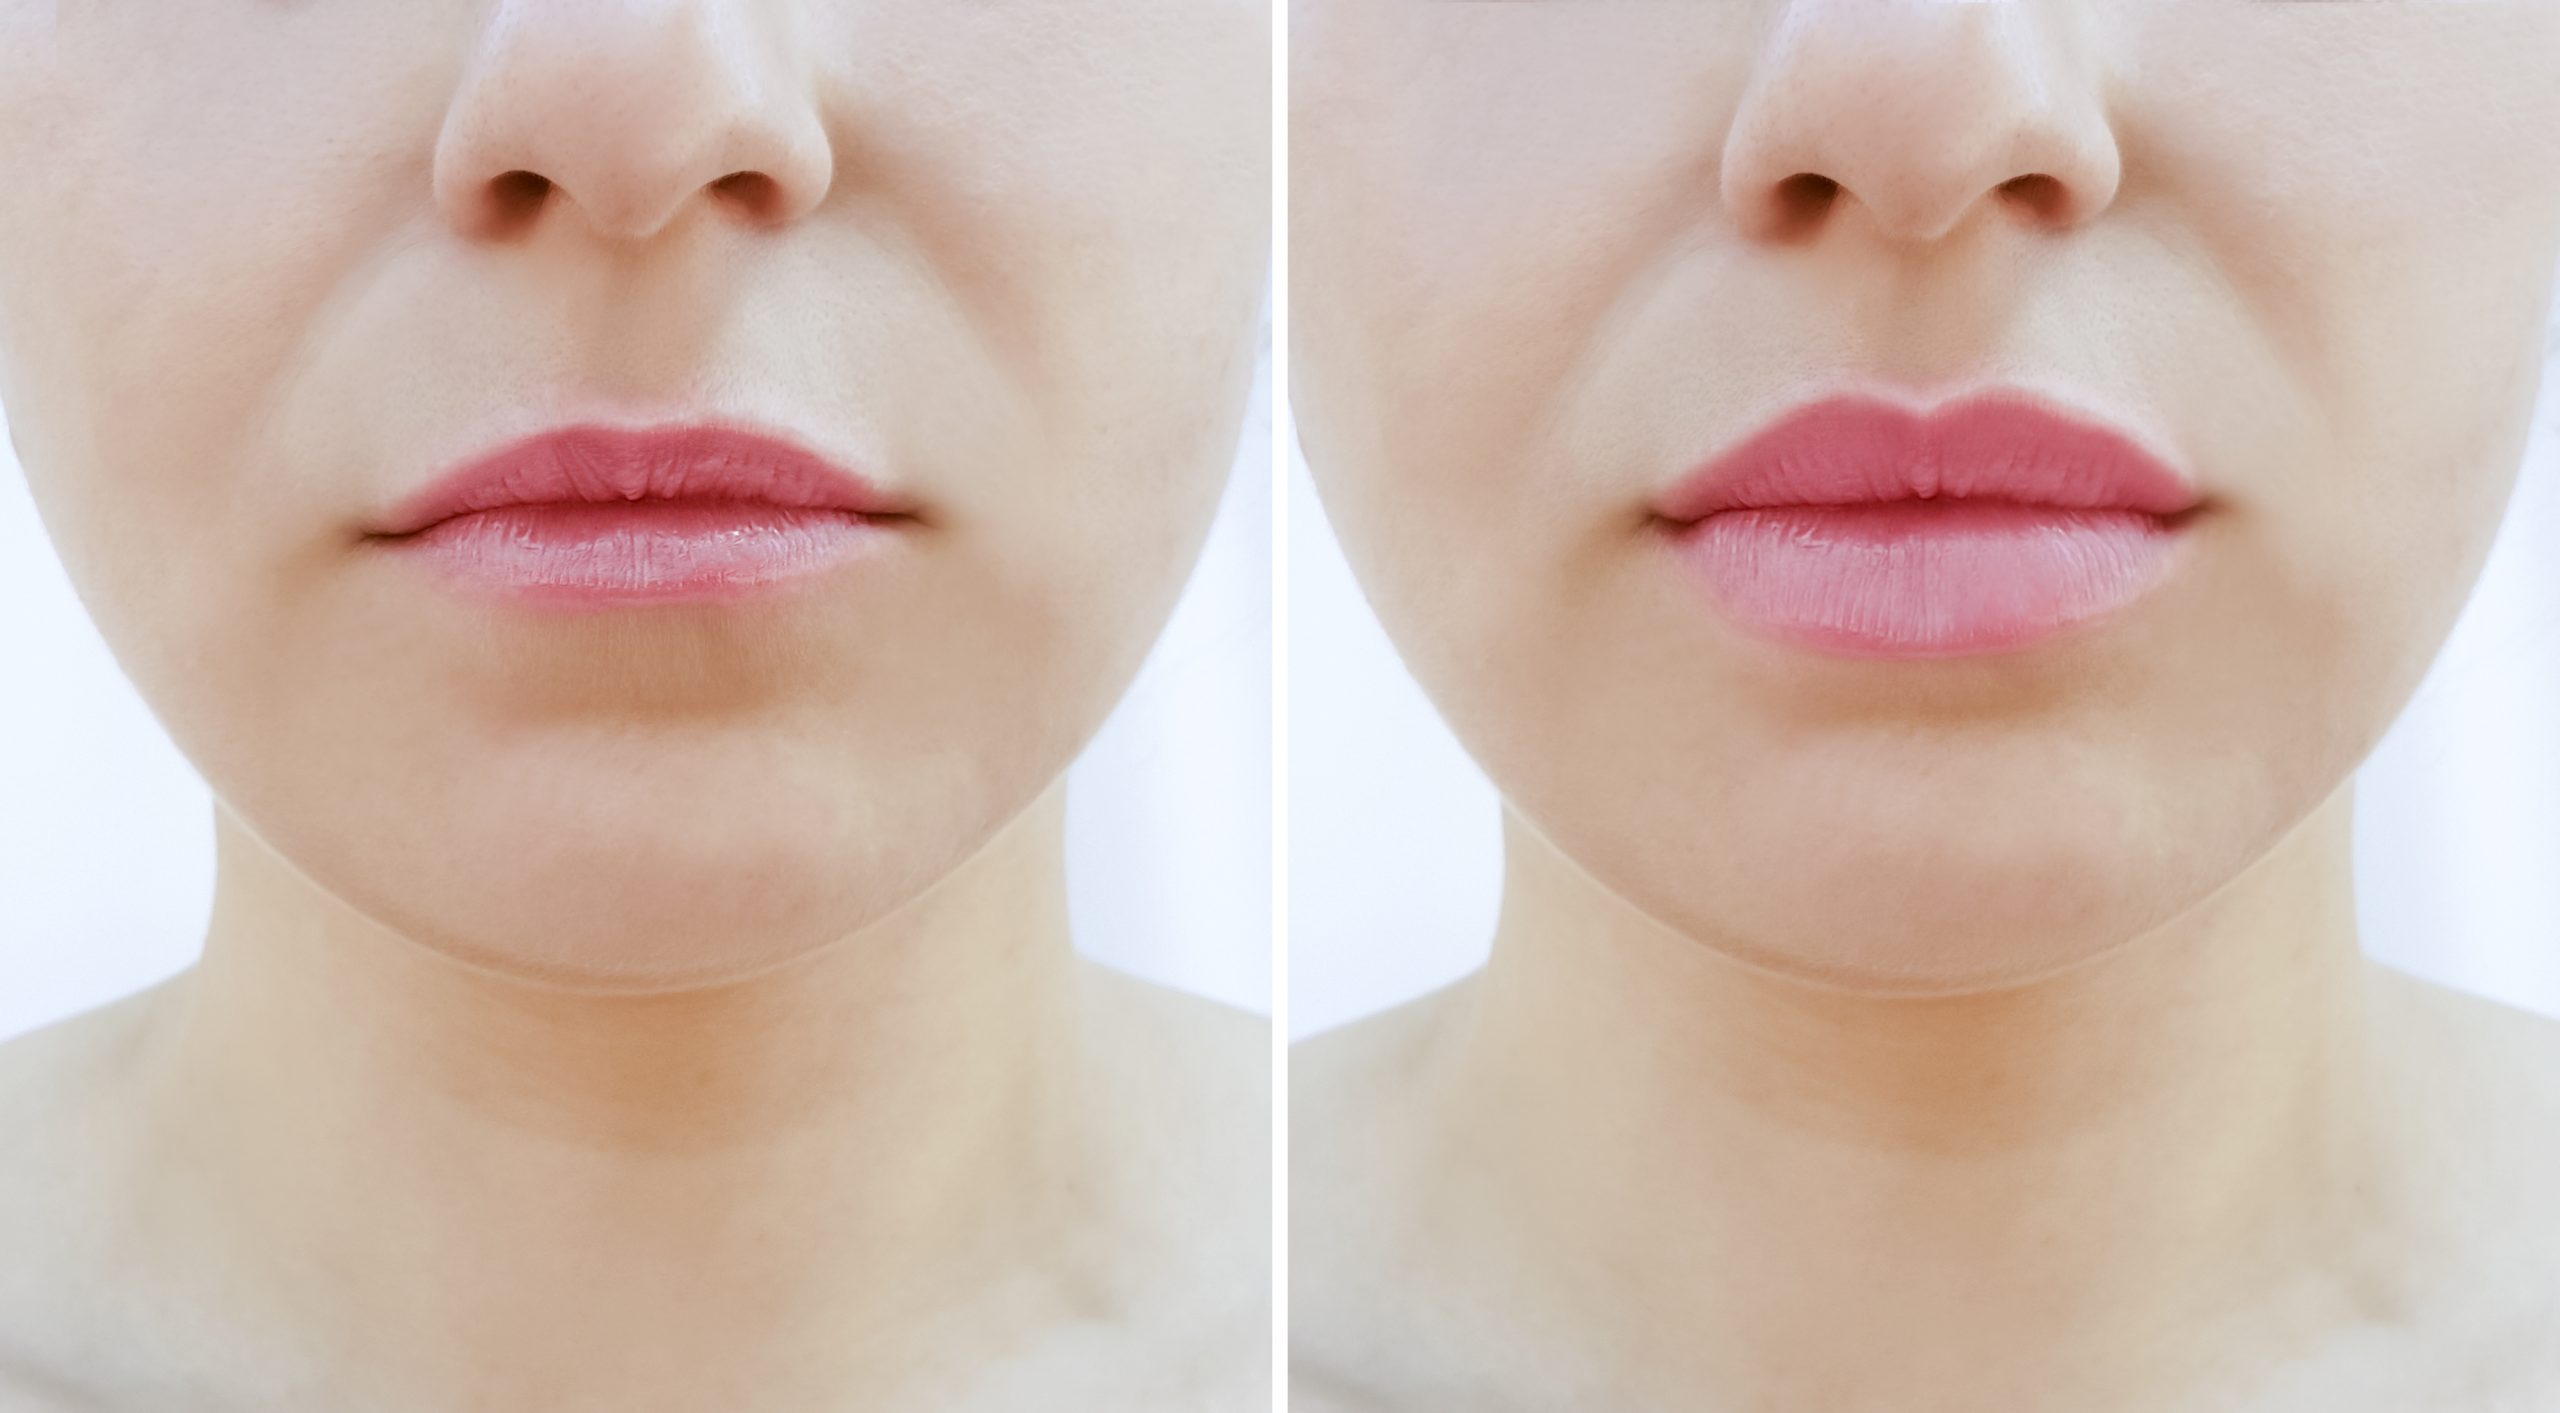 Woman's lips before and after fillers